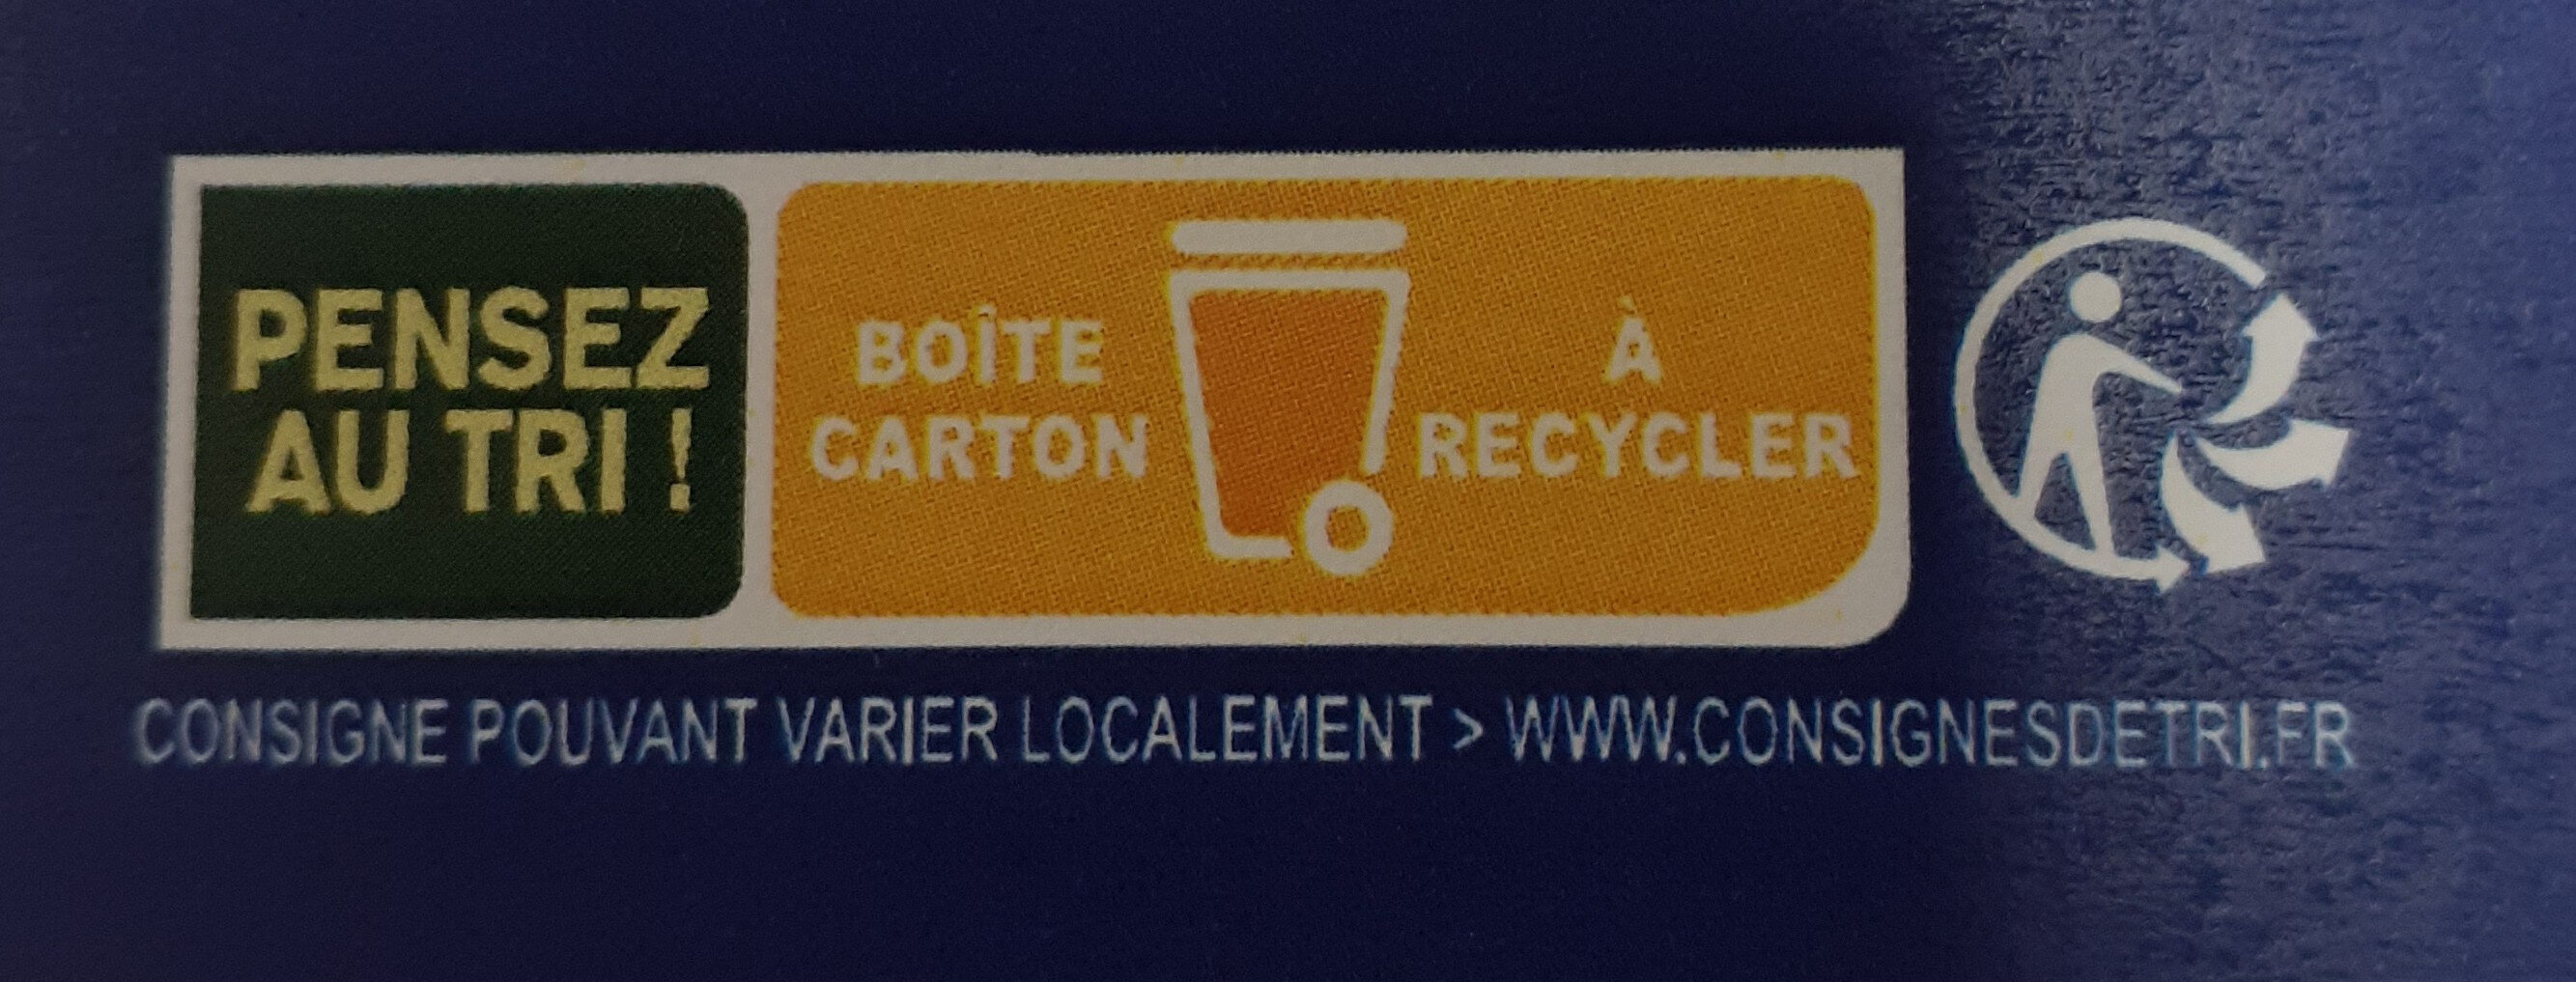 12 oeufs fermiers label rouge de - Instruction de recyclage et/ou information d'emballage - fr